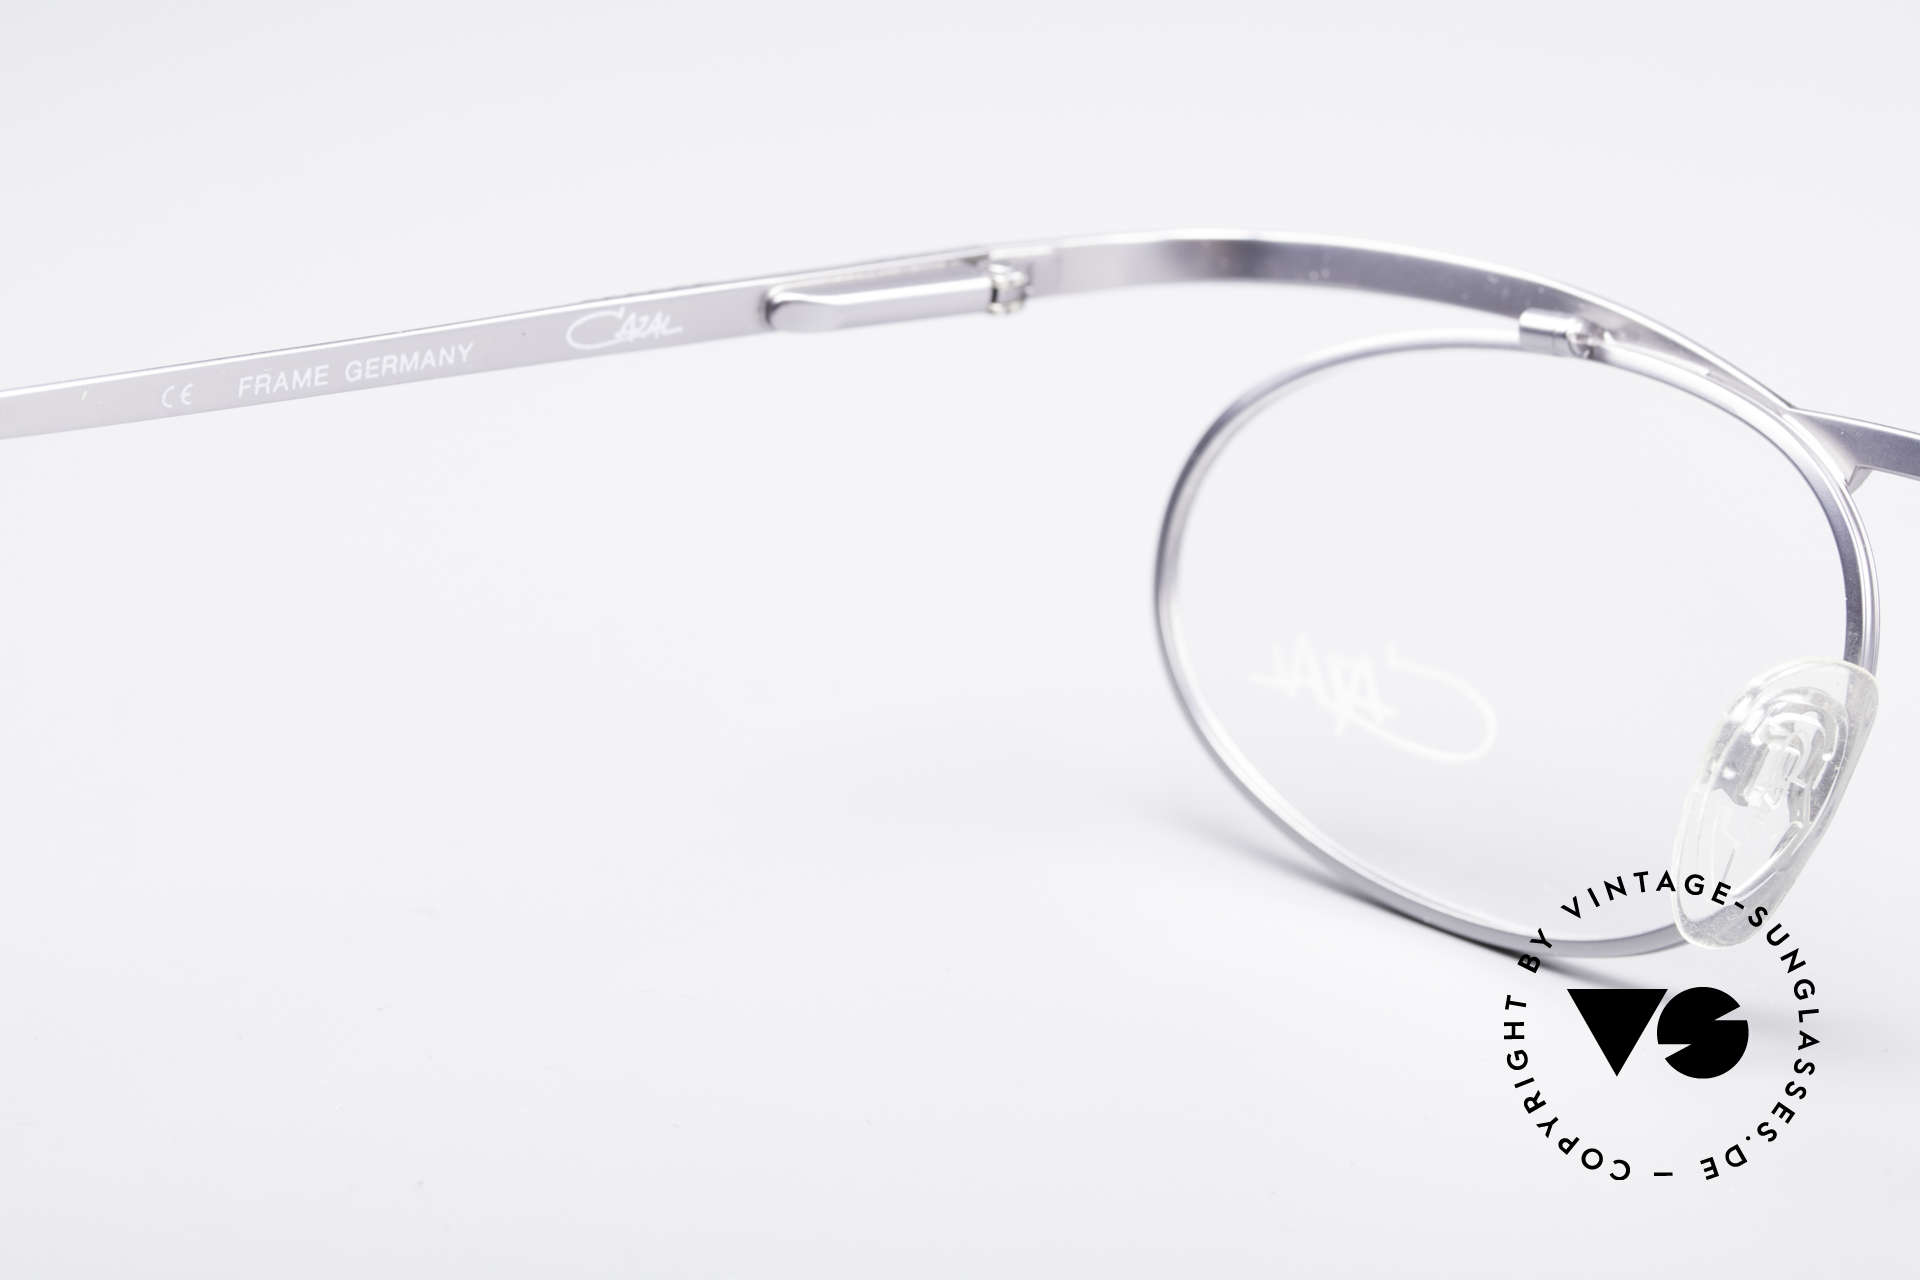 Cazal 771 90's Frame NO Retro Glasses, new old stock (like all our rare vintage eyeglasses), Made for Men and Women